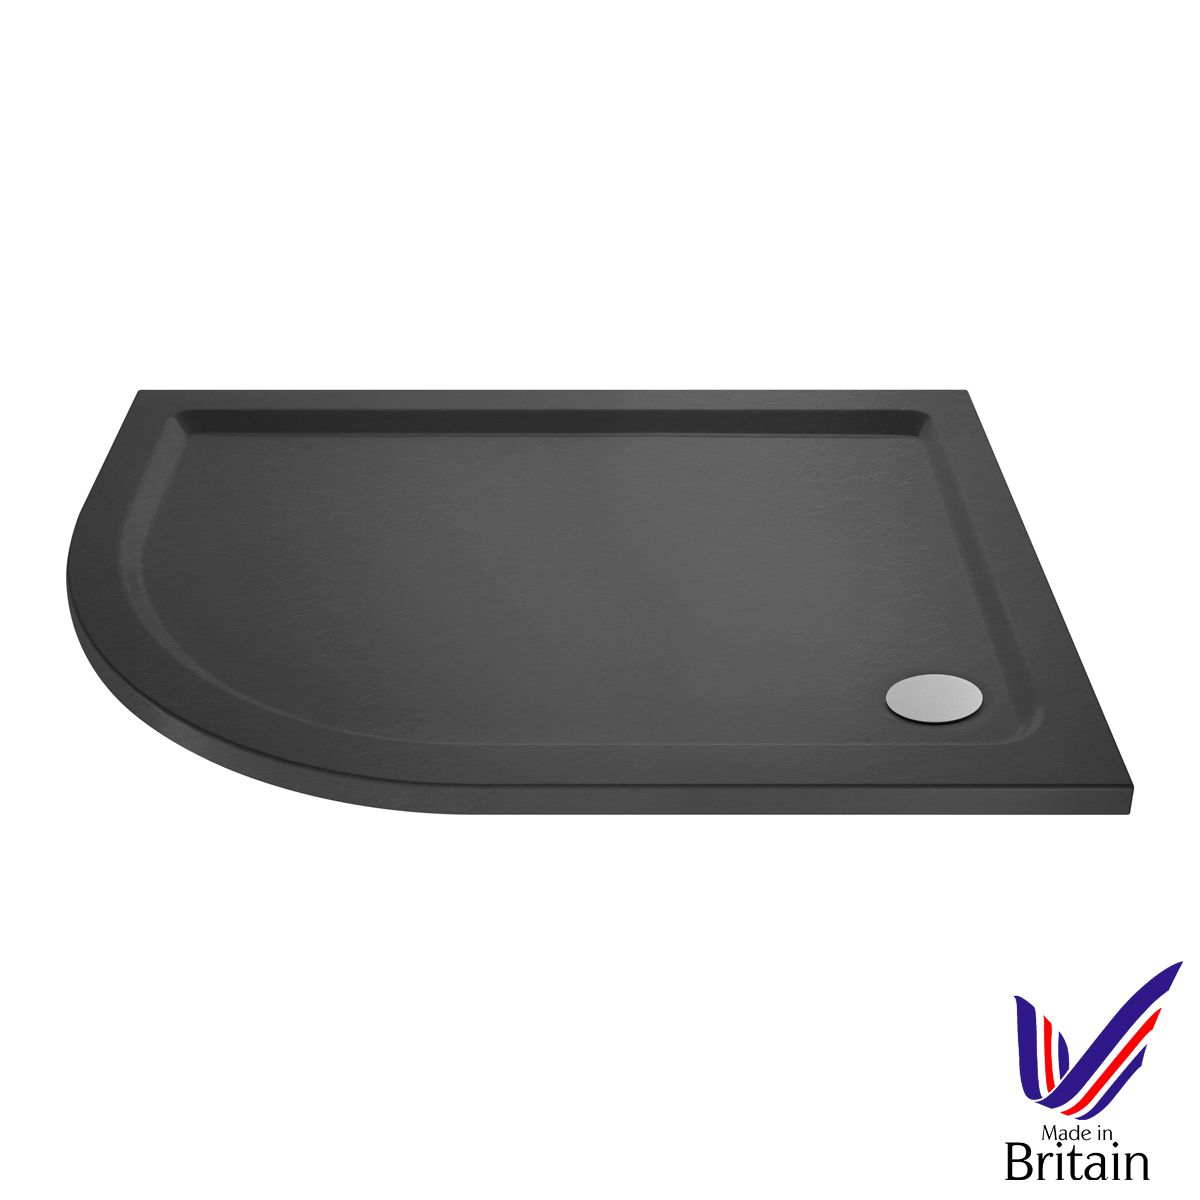 1000 x 900 Shower Tray Slate Grey Offset Quadrant Low Profile Left Hand by Pearlstone